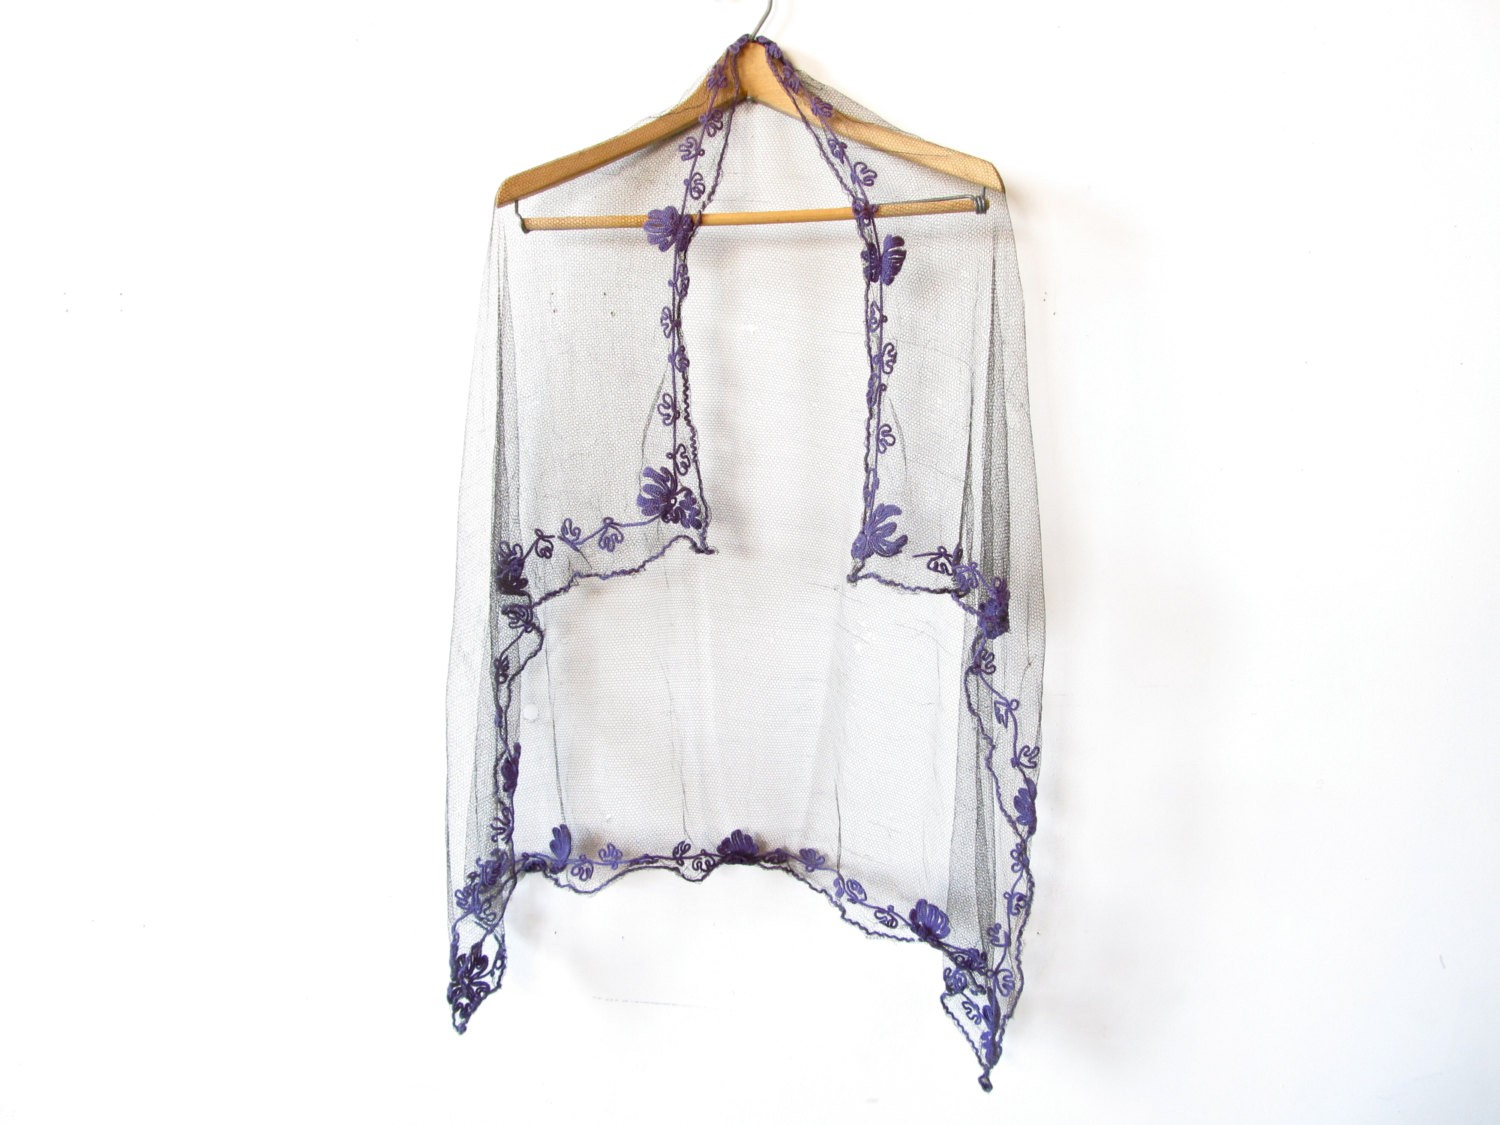 Antique Victorian Black Mesh Shawl with Purple Floral Embroidery - $124.00 USD